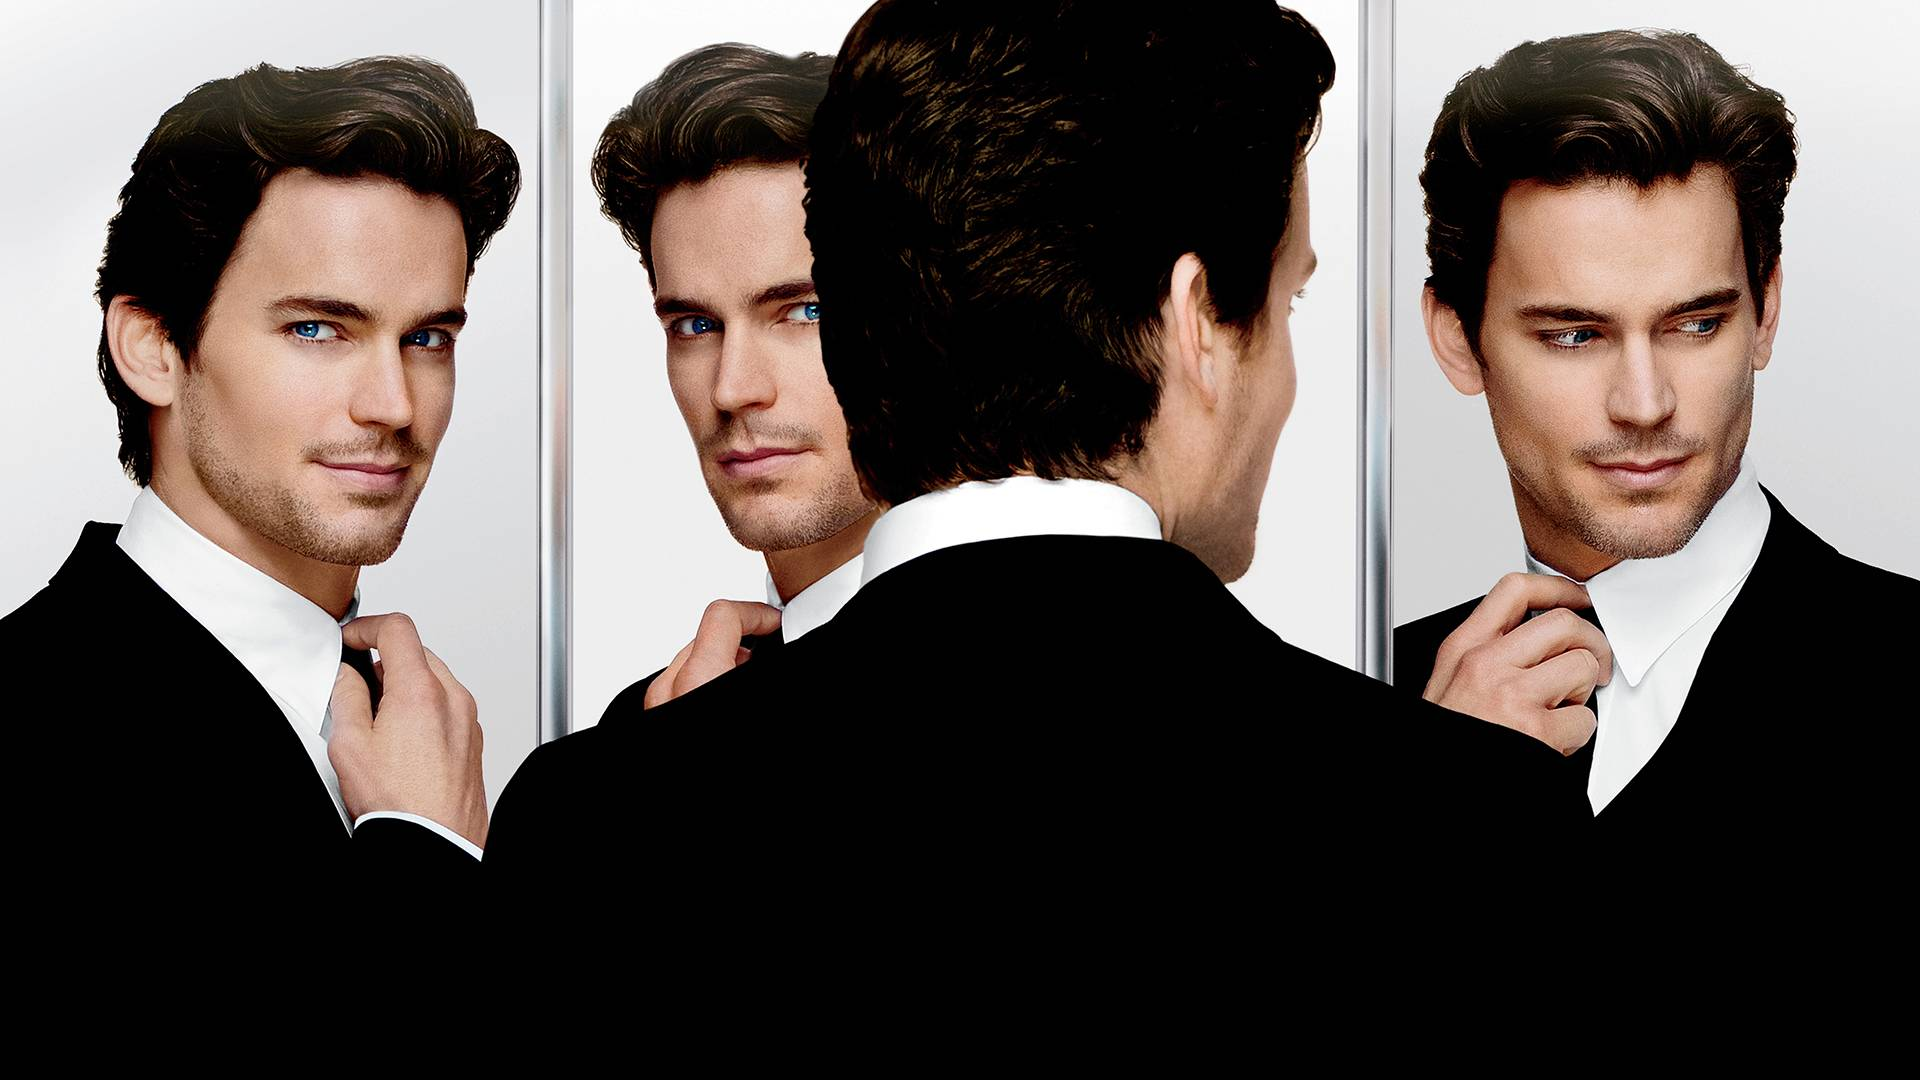 Matt Bomer Wallpapers Matt Bomer Wallpapers Wallpaper High Definition High Quality